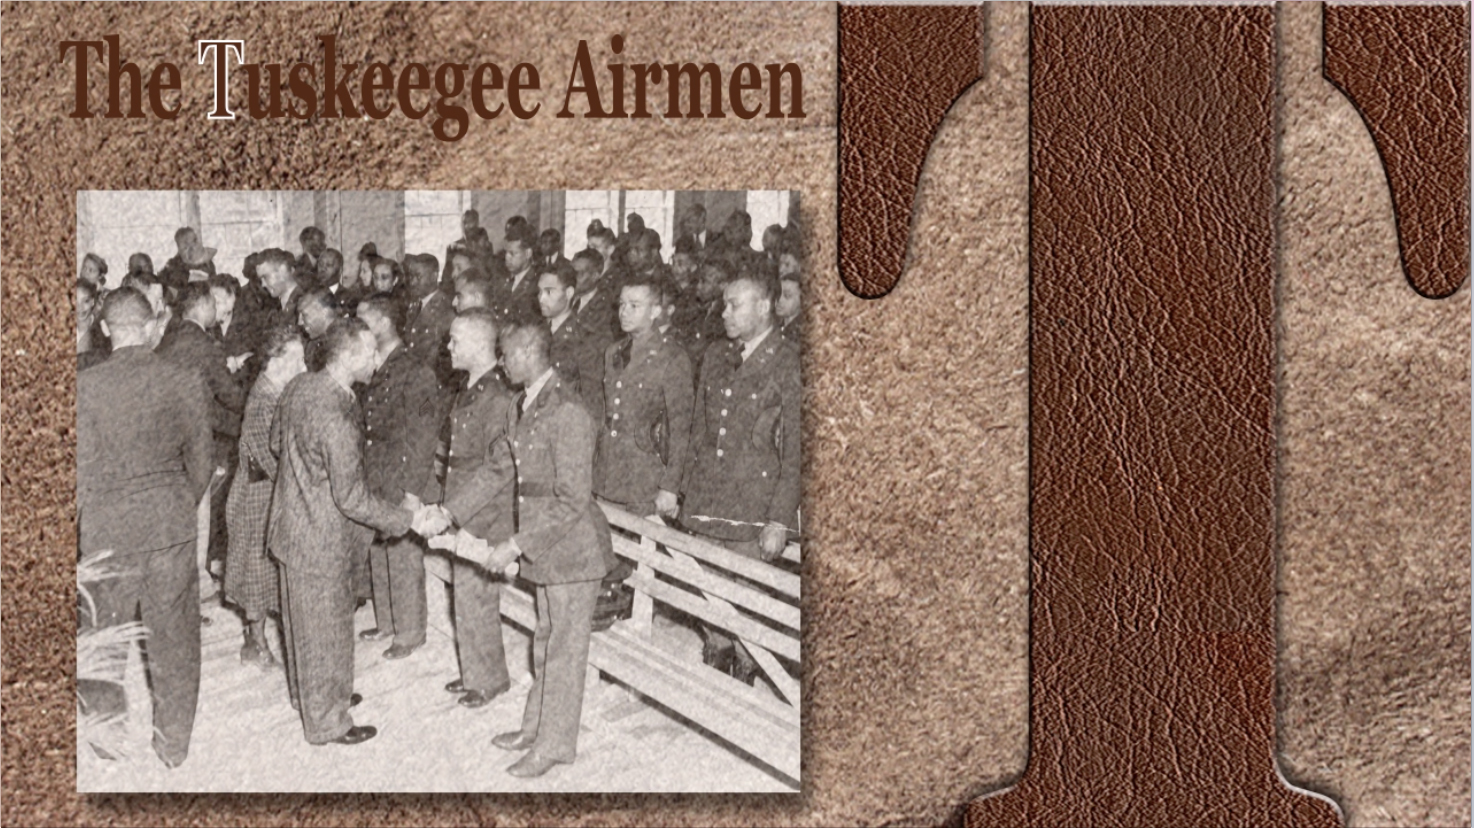 The Tuskegee Airmen were the first African-American military aviators in the United States Armed Forces. During World War II